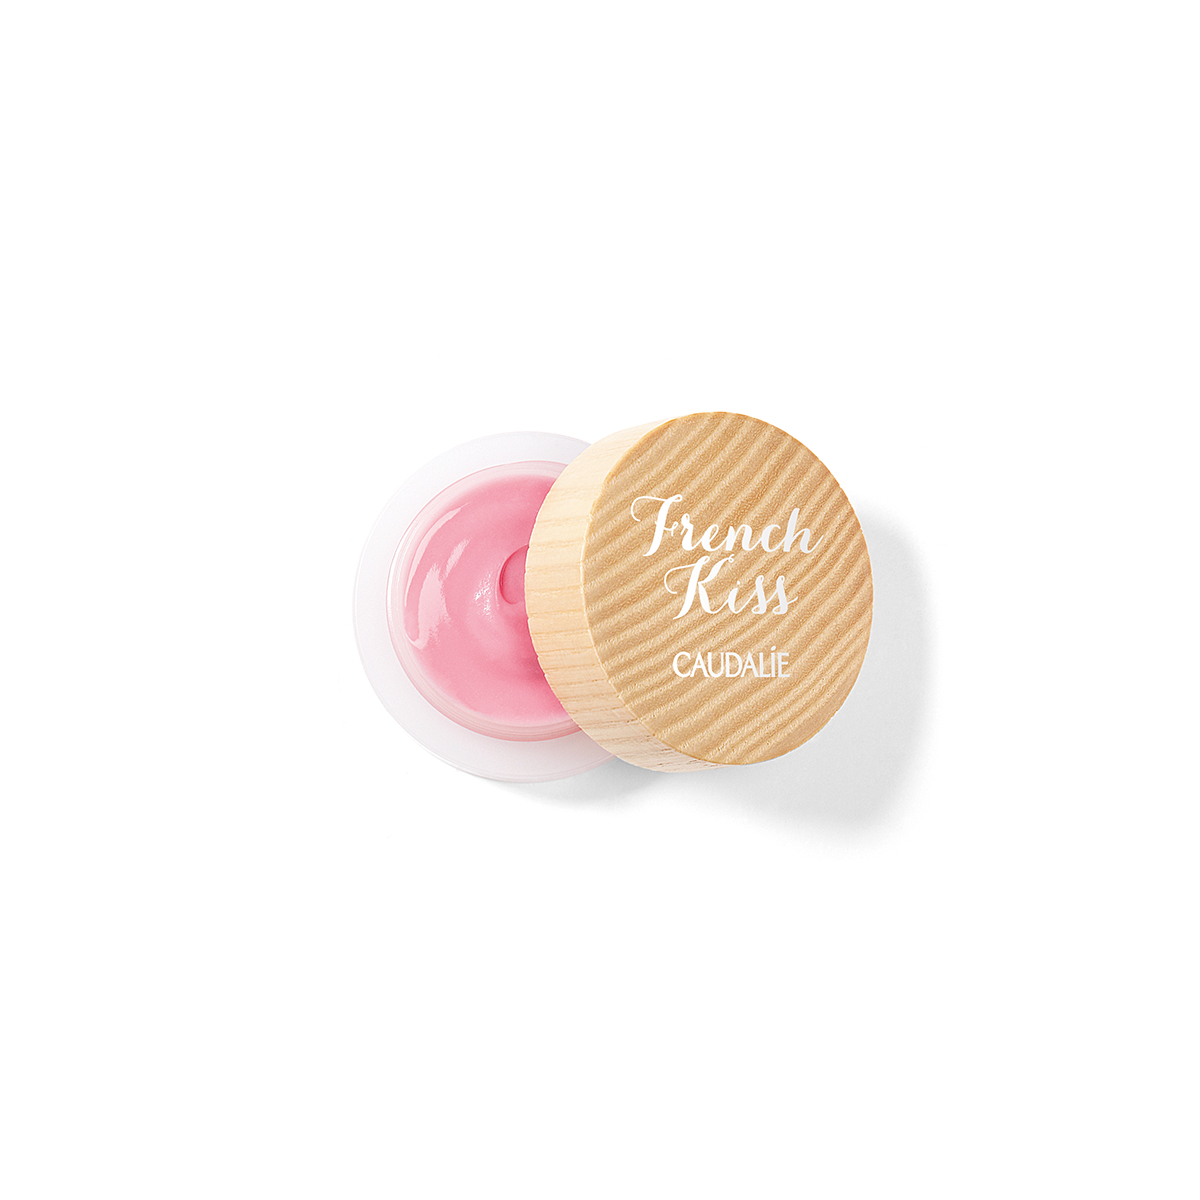 French Kiss Lip Balm Com Cor Innocence